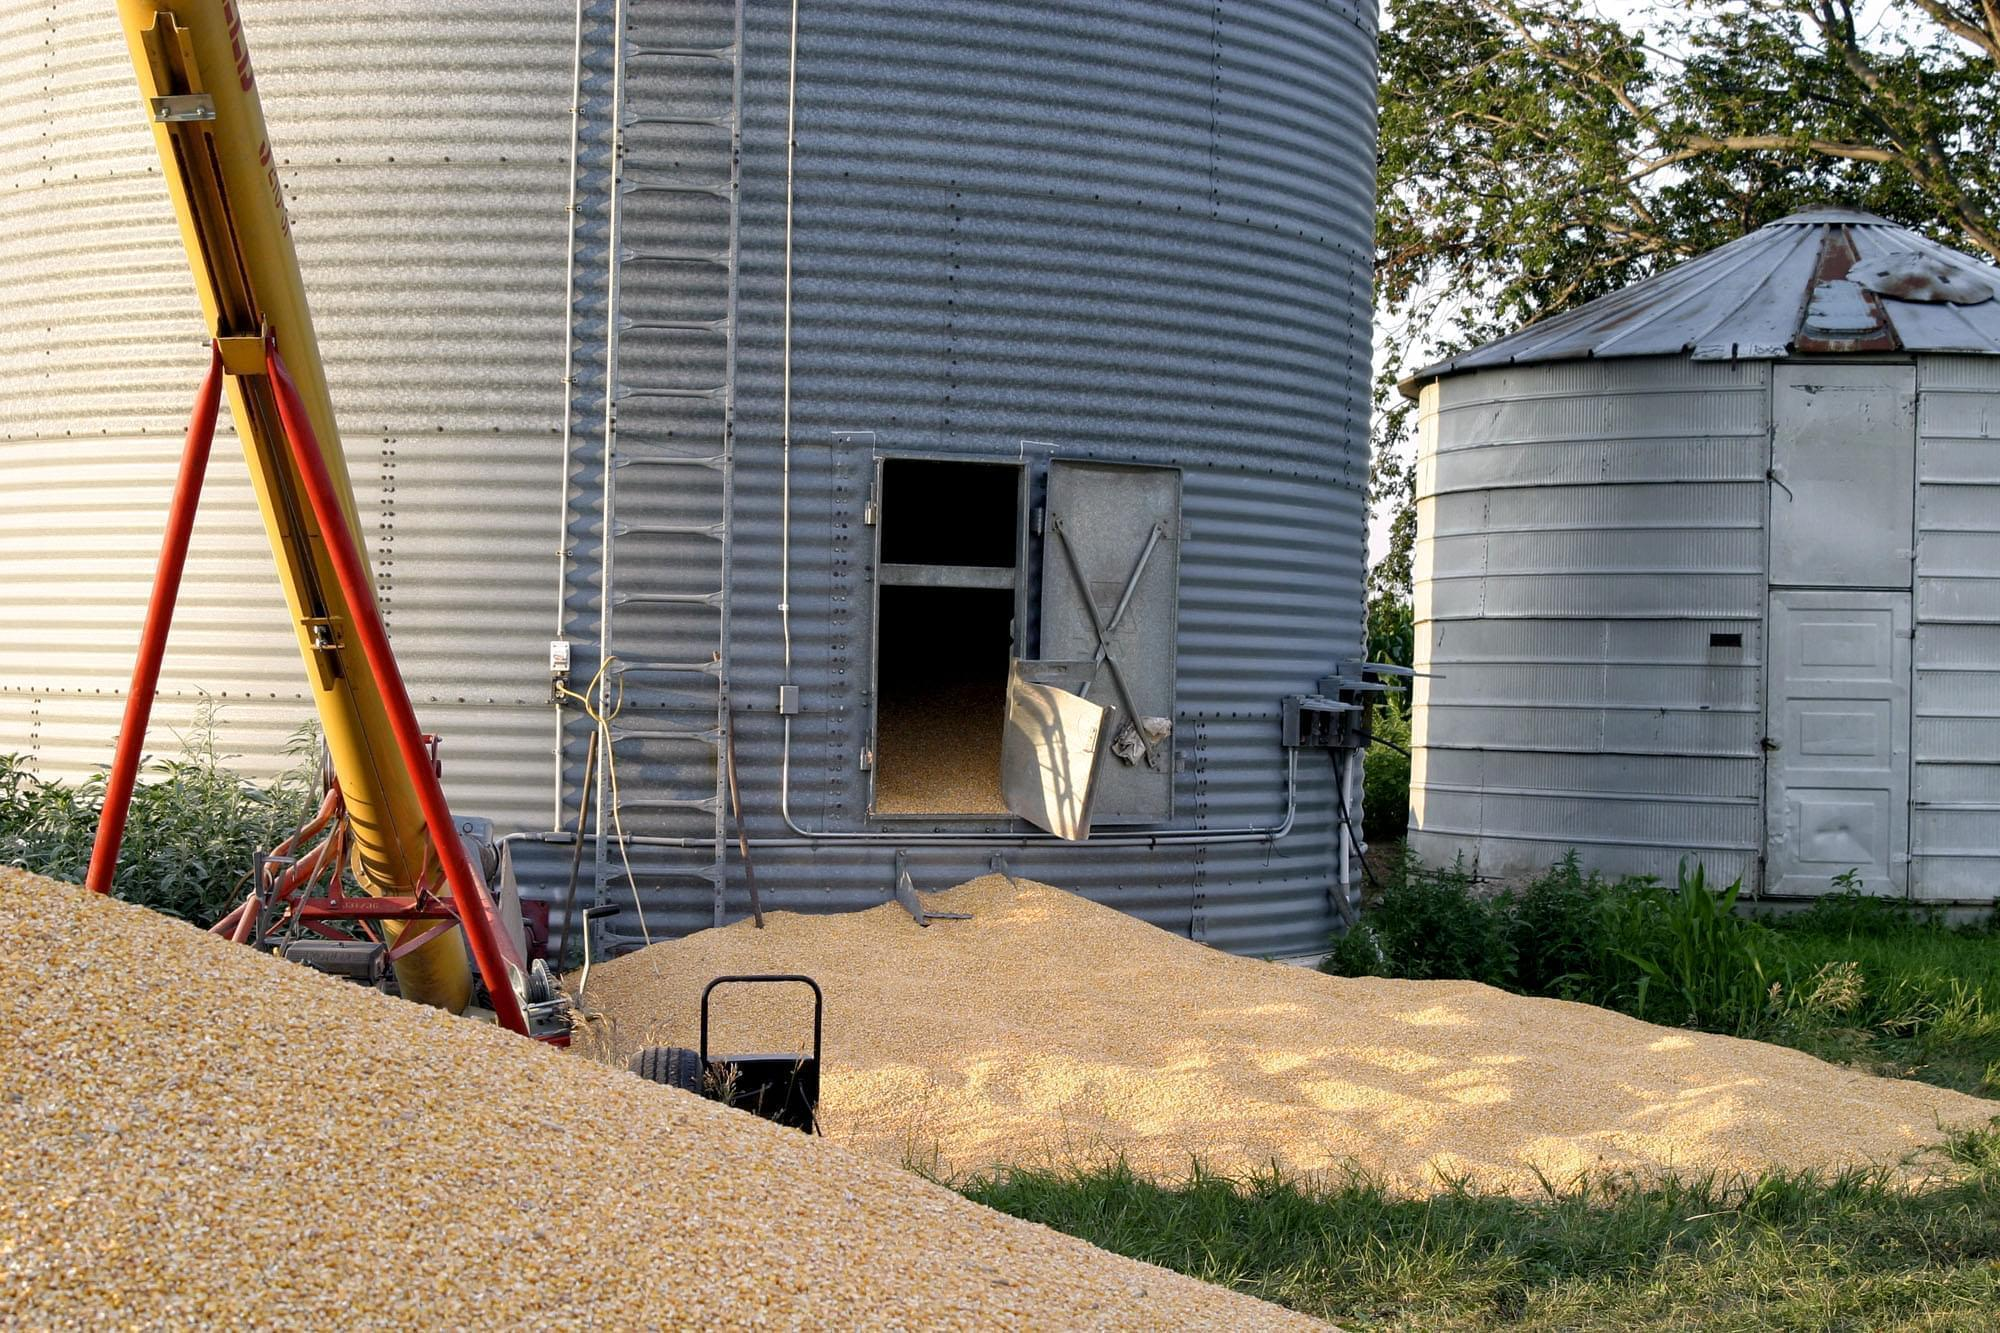 The door on a grain bin remains open following an accident in Story County, Iowa on July 11, 2005, which killed a 72-year-old Nevada, Iowa man after he and two others were loading a semitrailer with grain.